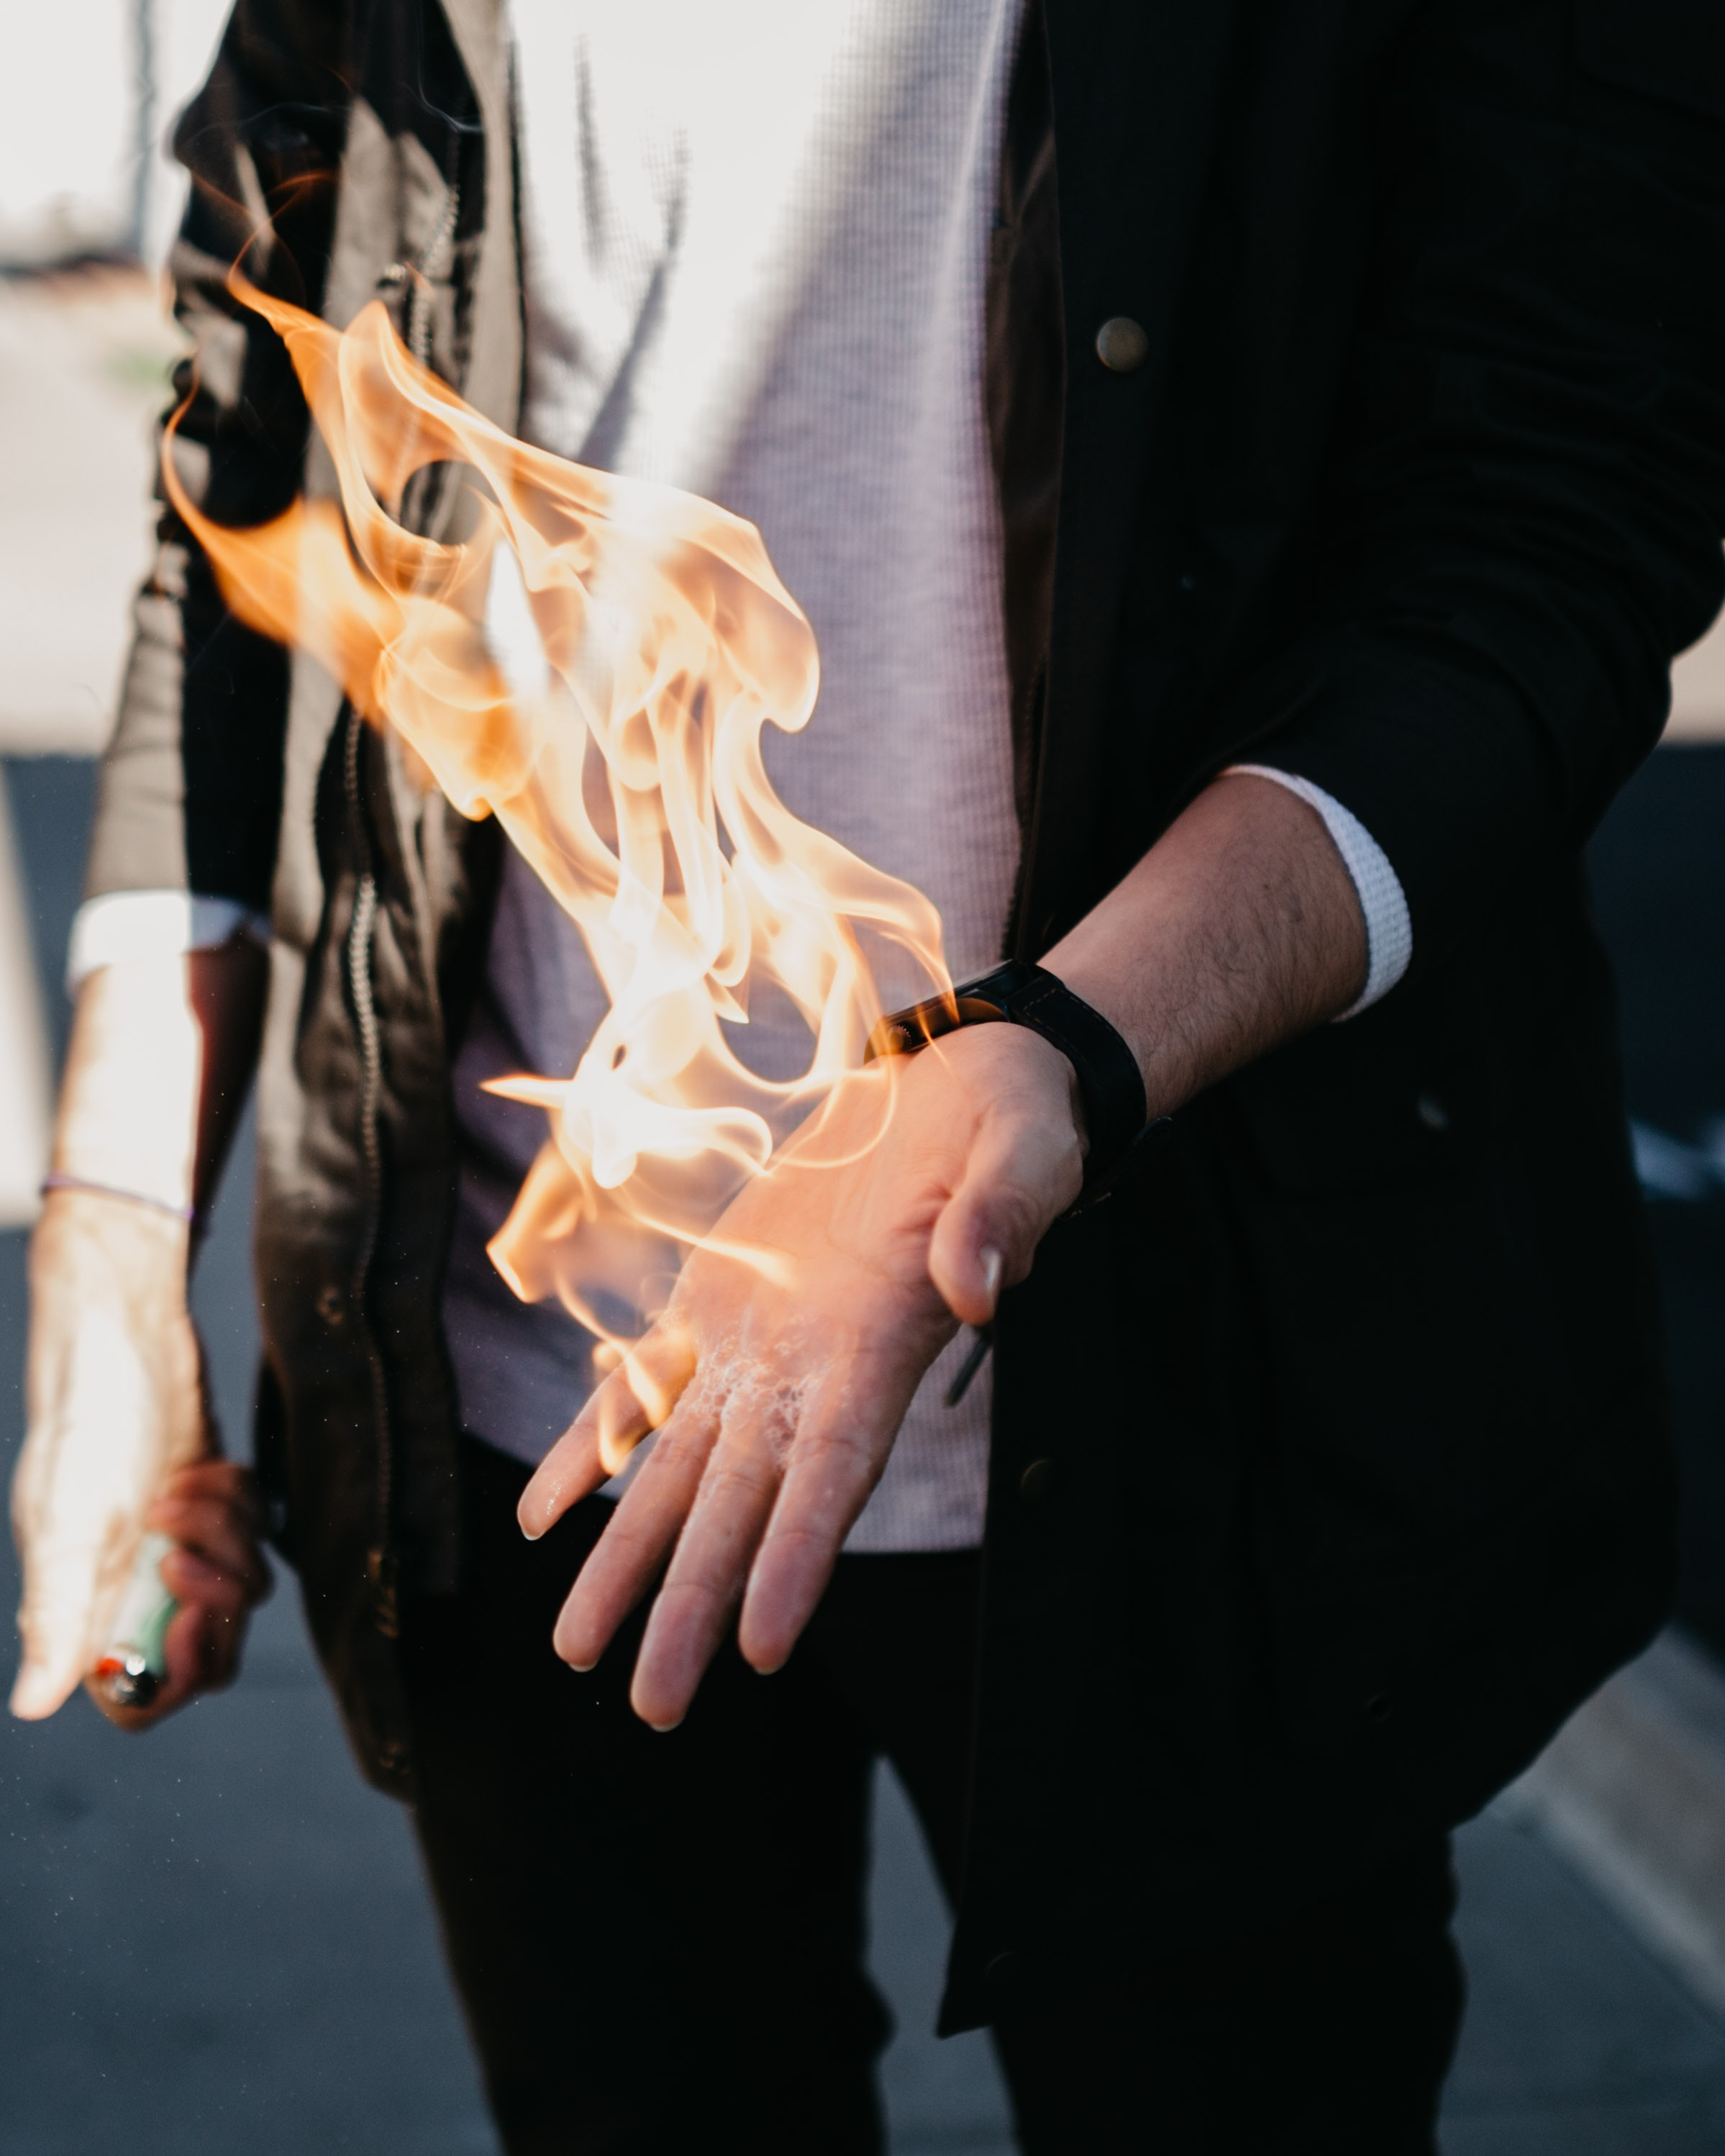 person with flaming hand